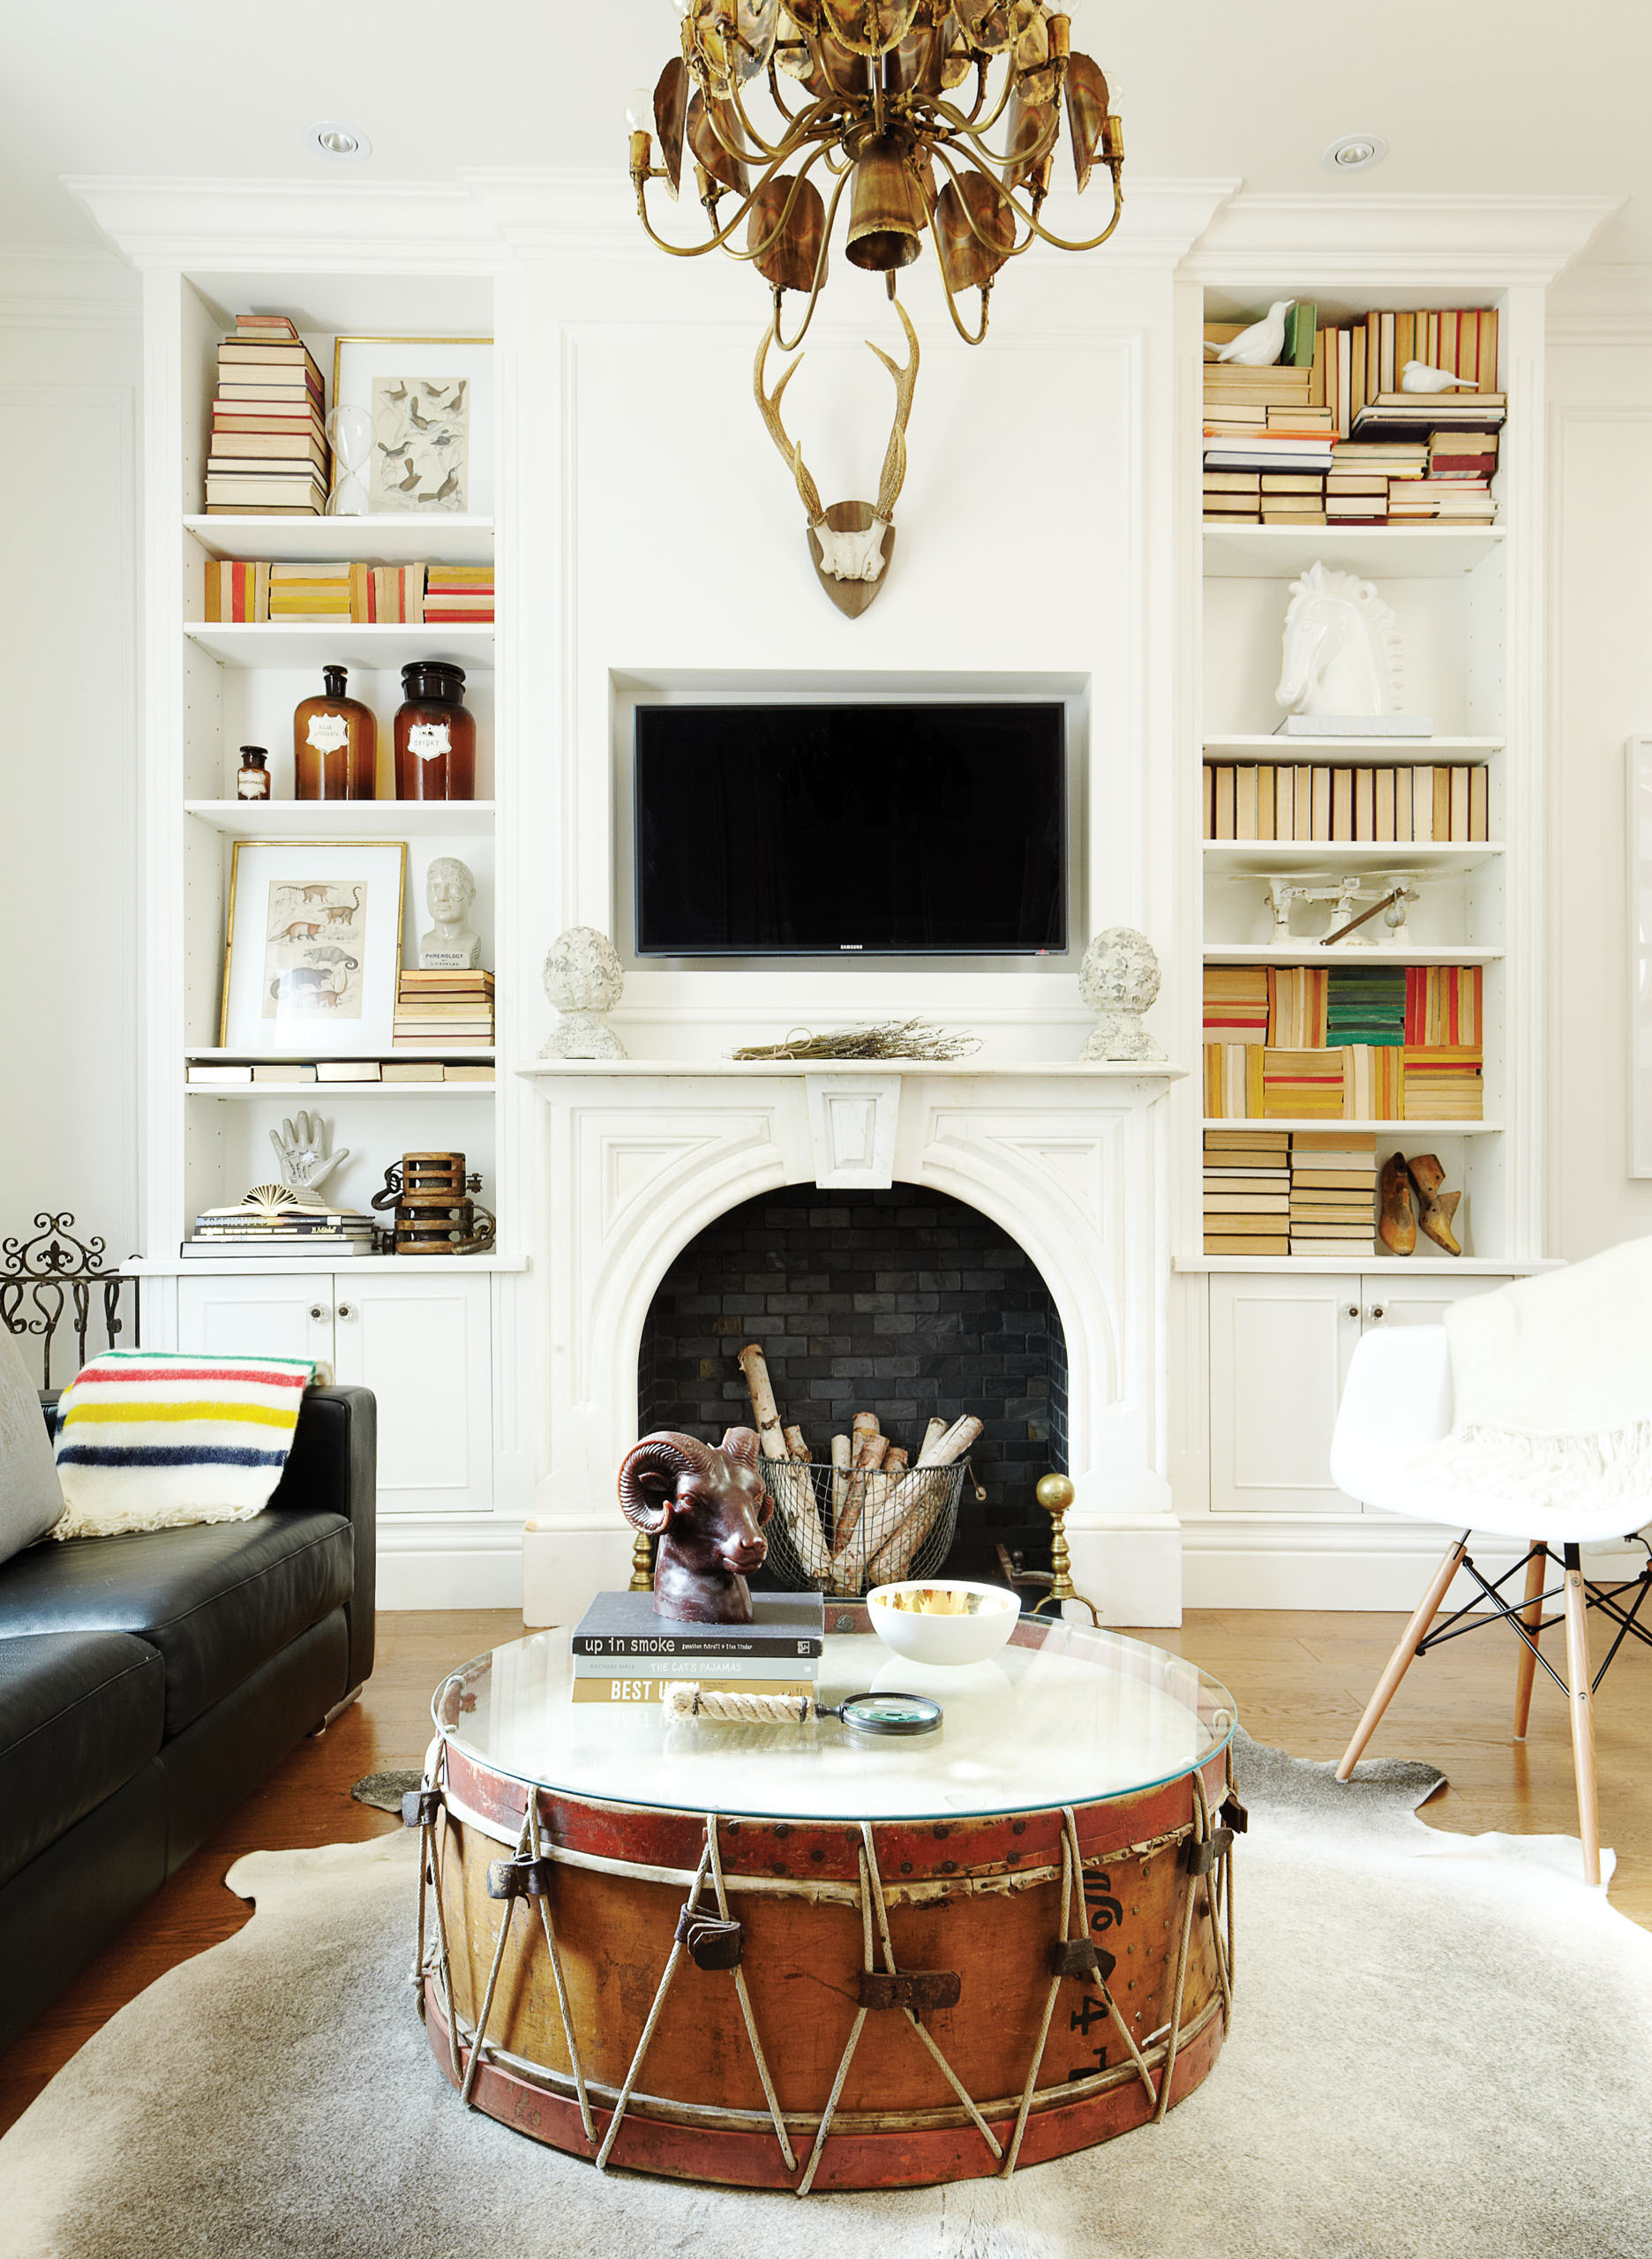 Living room, fireplace, drum coffee table, bookshelves